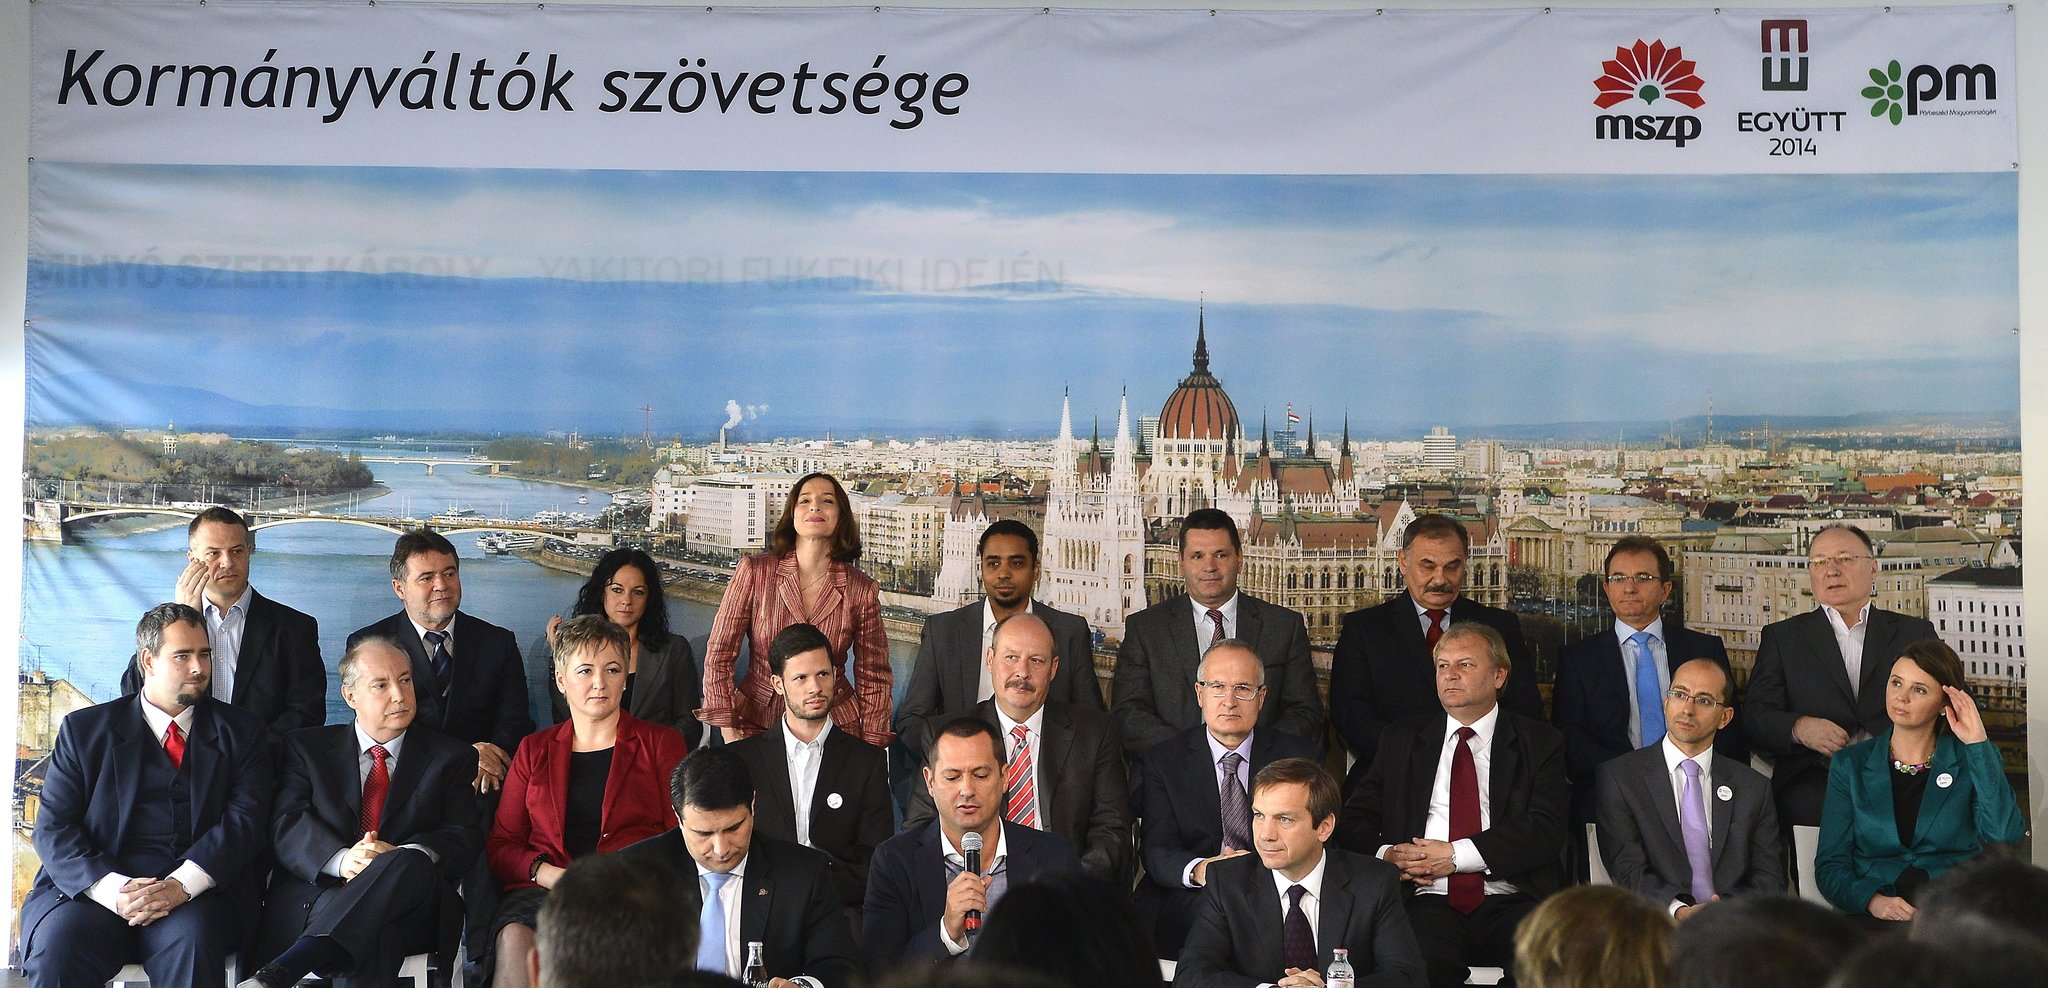 MSZP and E14-PM alliance present election candidates for Budapest